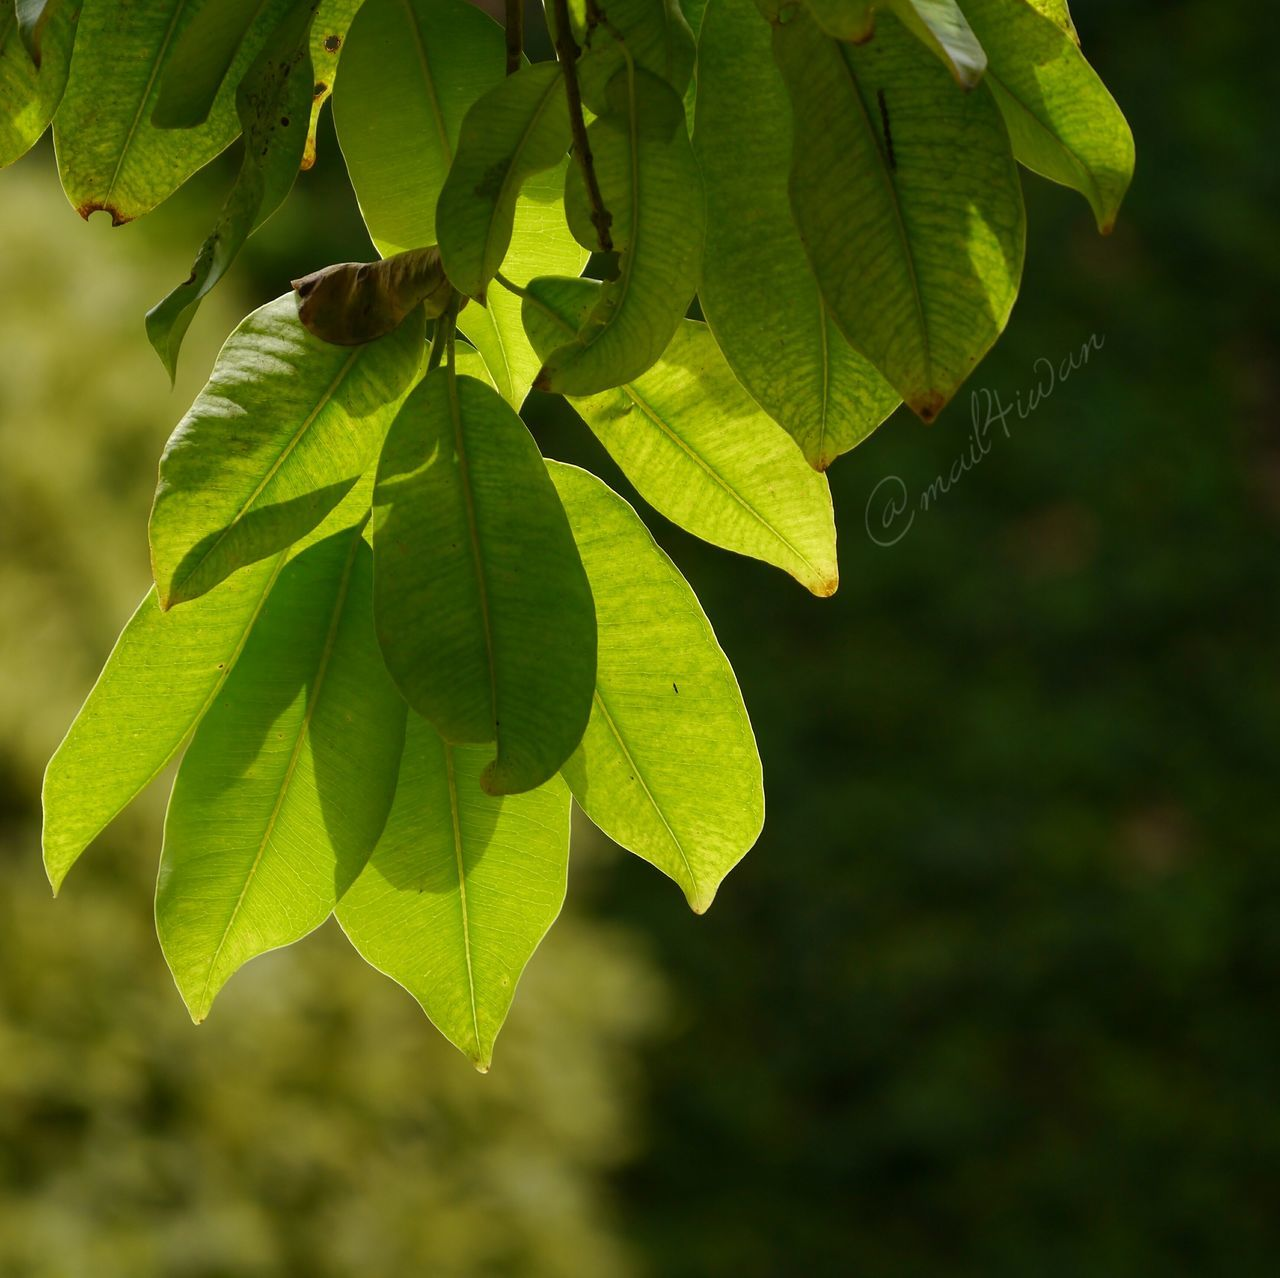 Leaf Nature Green Color Plant Close-up Growth No People Beauty In Nature Outdoors Freshness Day Tree Fragility